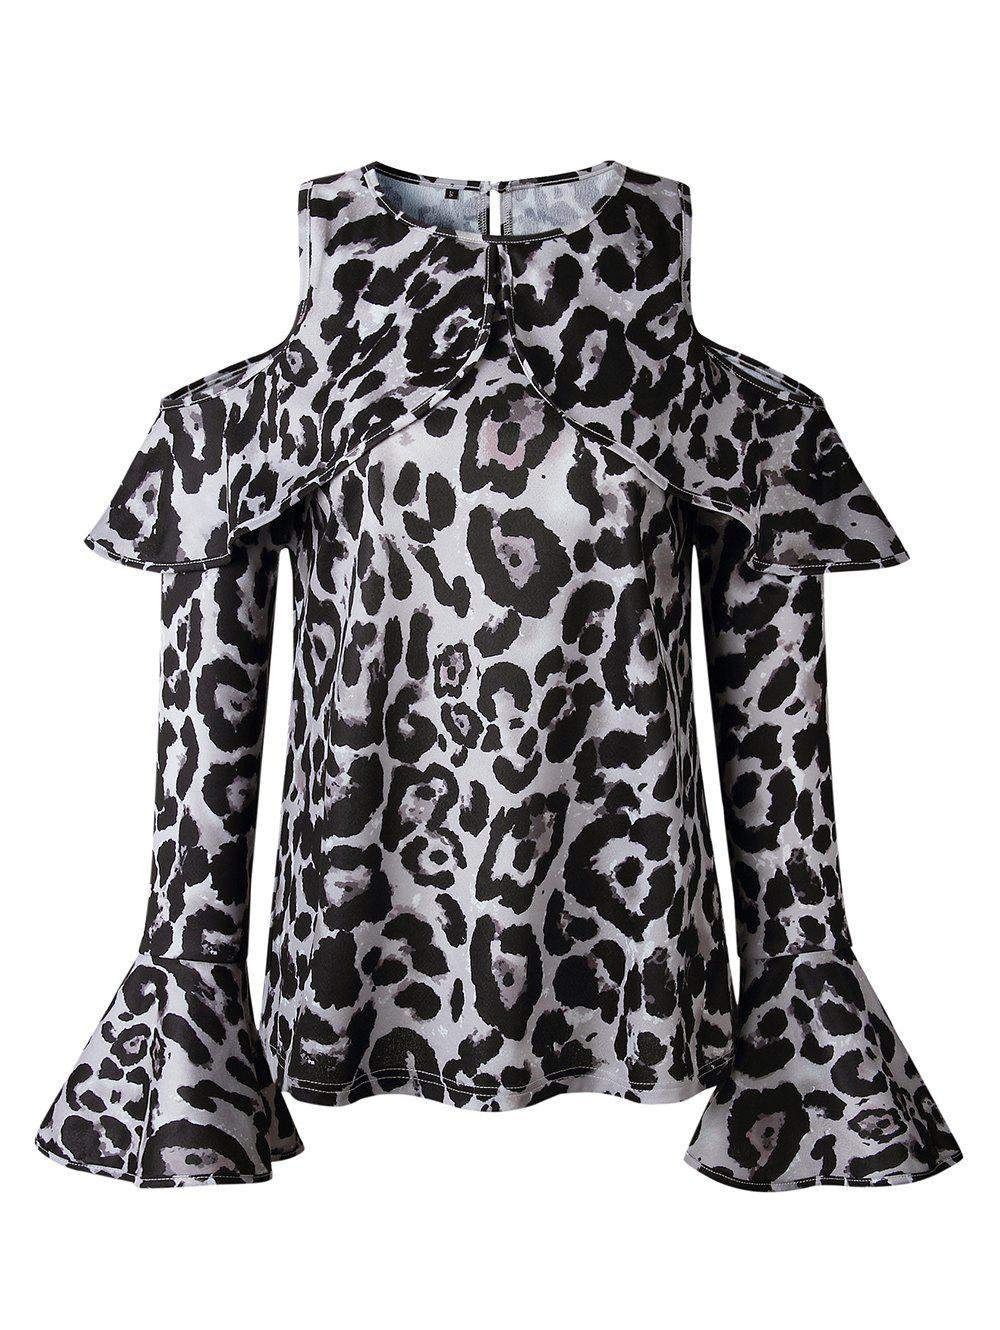 Online Women Sexy Top Off Shoulder Leopard Print Casual O-Neck Shirt Fashion Long Sleeve Blouse